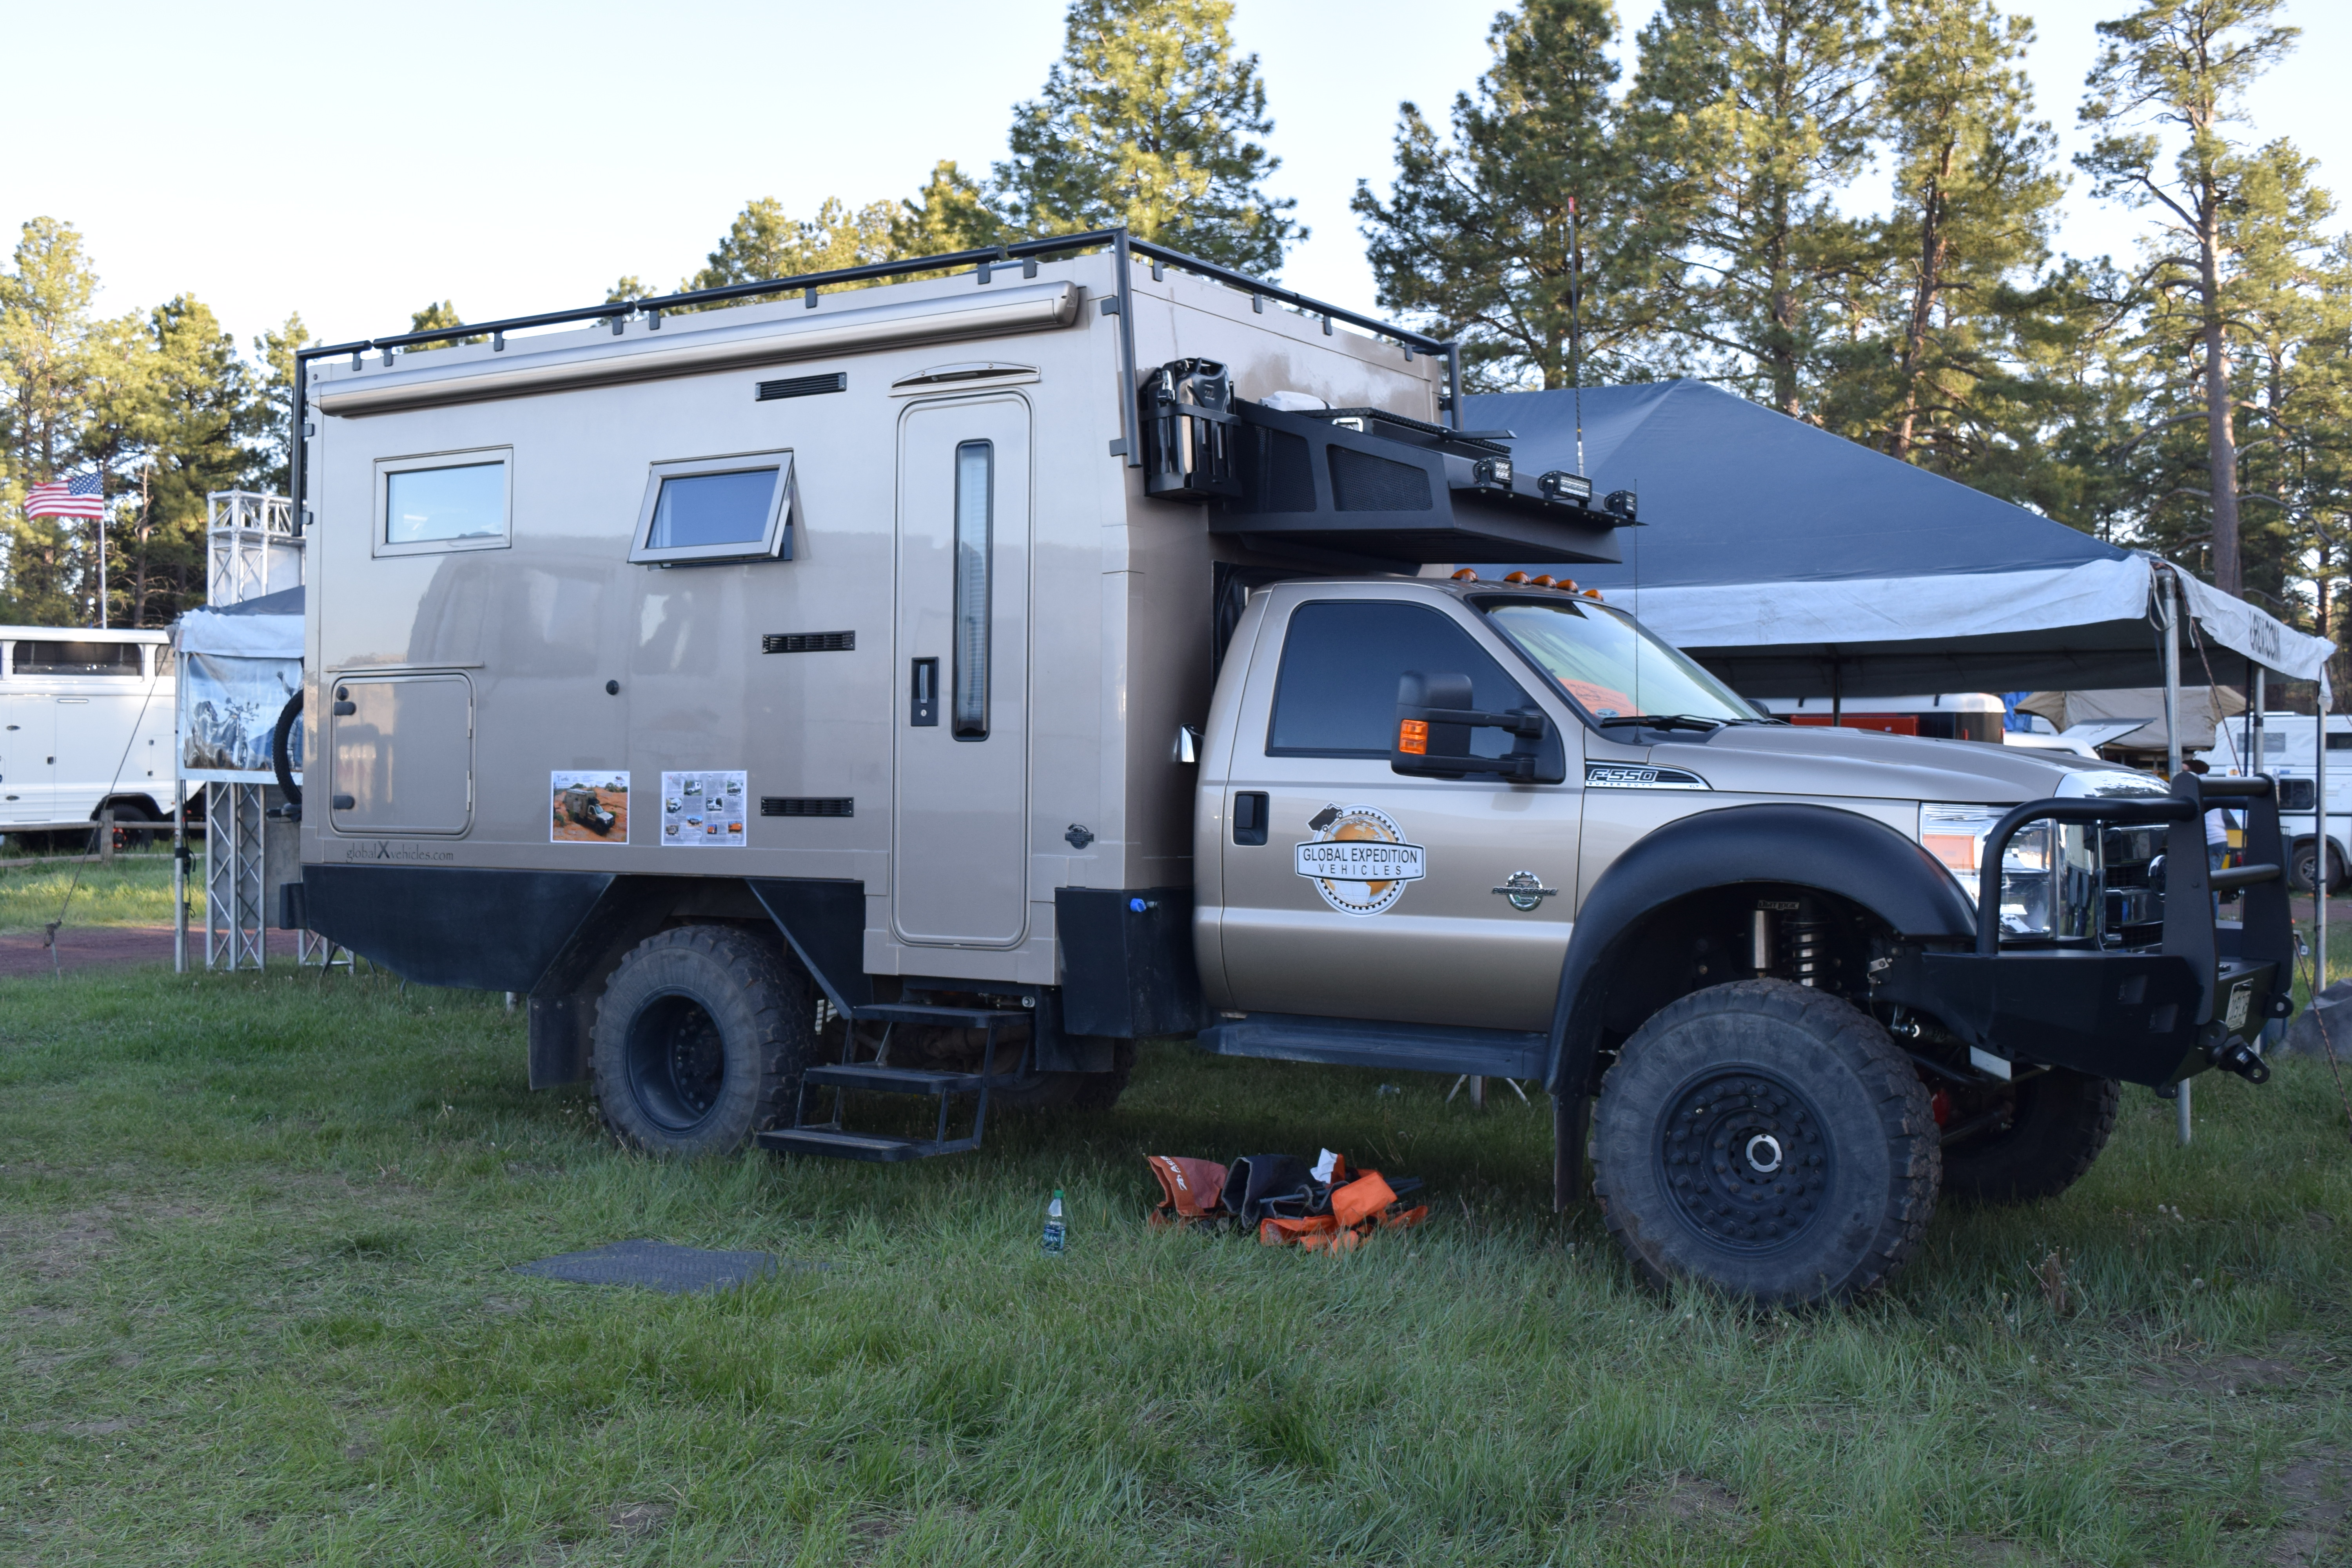 The Coolest Expedition Rigs From The 2016 Overland Expo